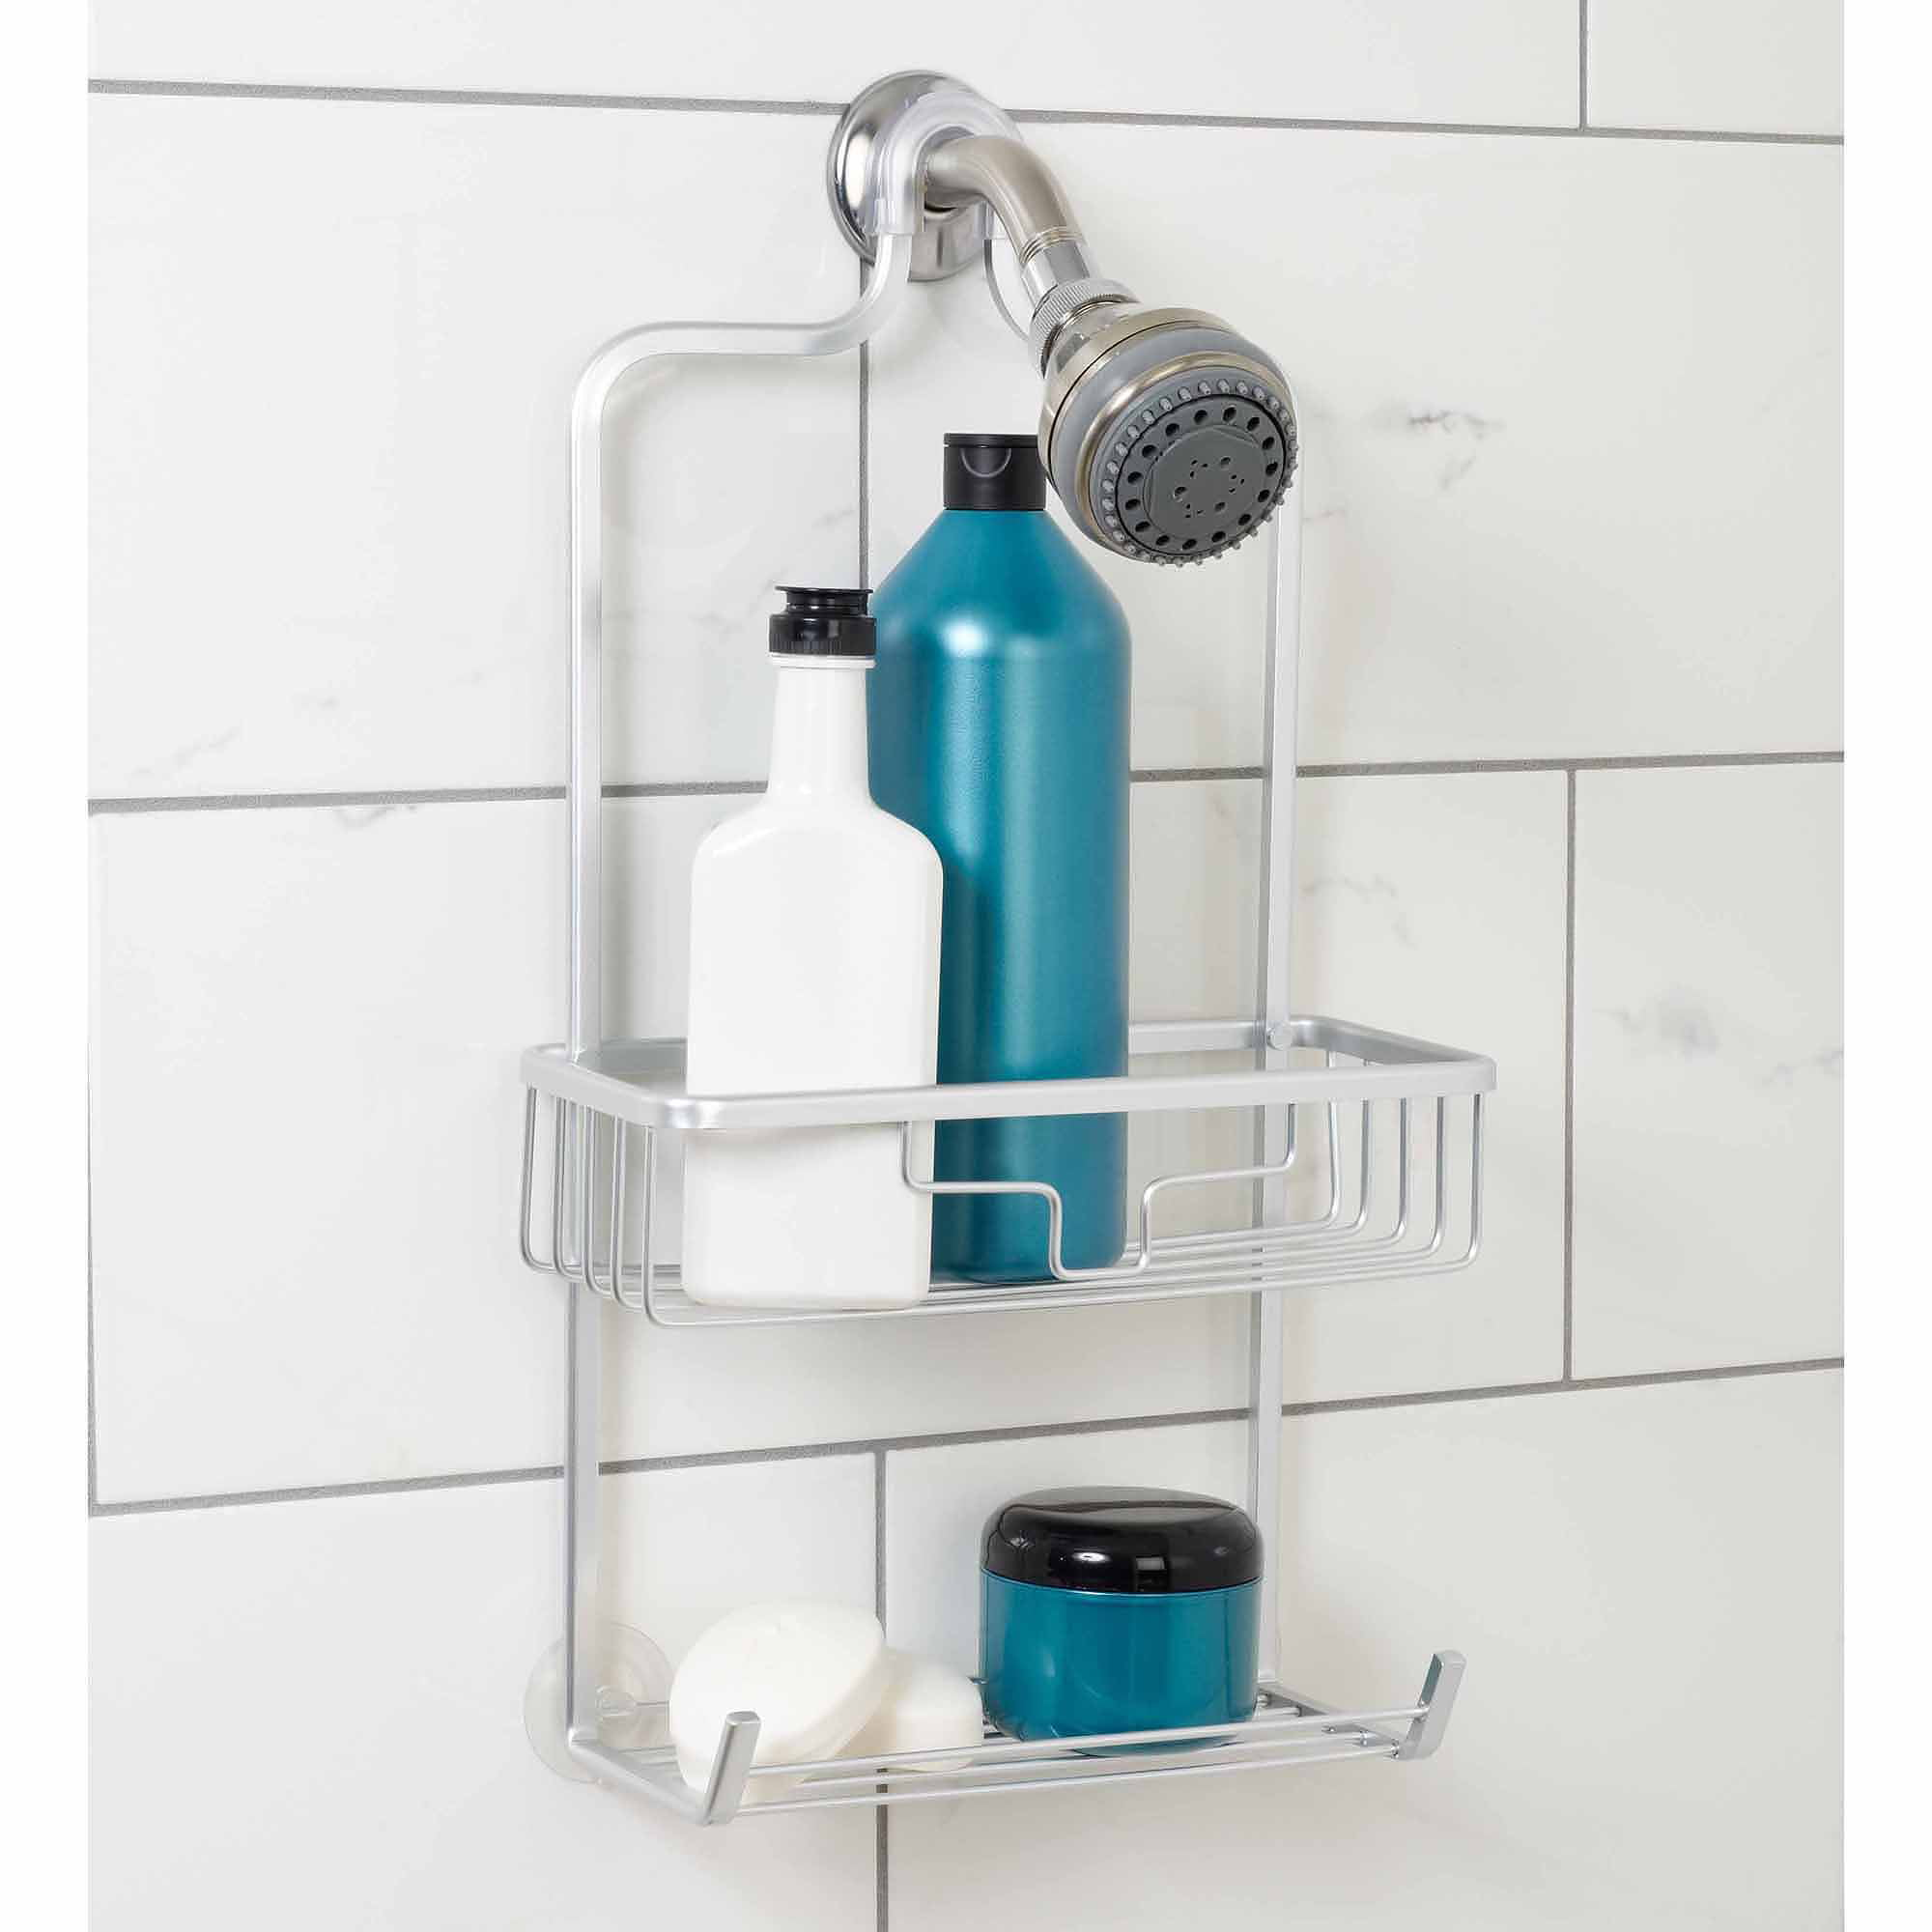 Zenna Home NeverRust Aluminum Shower Caddy with Bucket Shelf  Satin  Chrome. Zenna Home NeverRust Aluminum Shower Caddy with Bucket Shelf